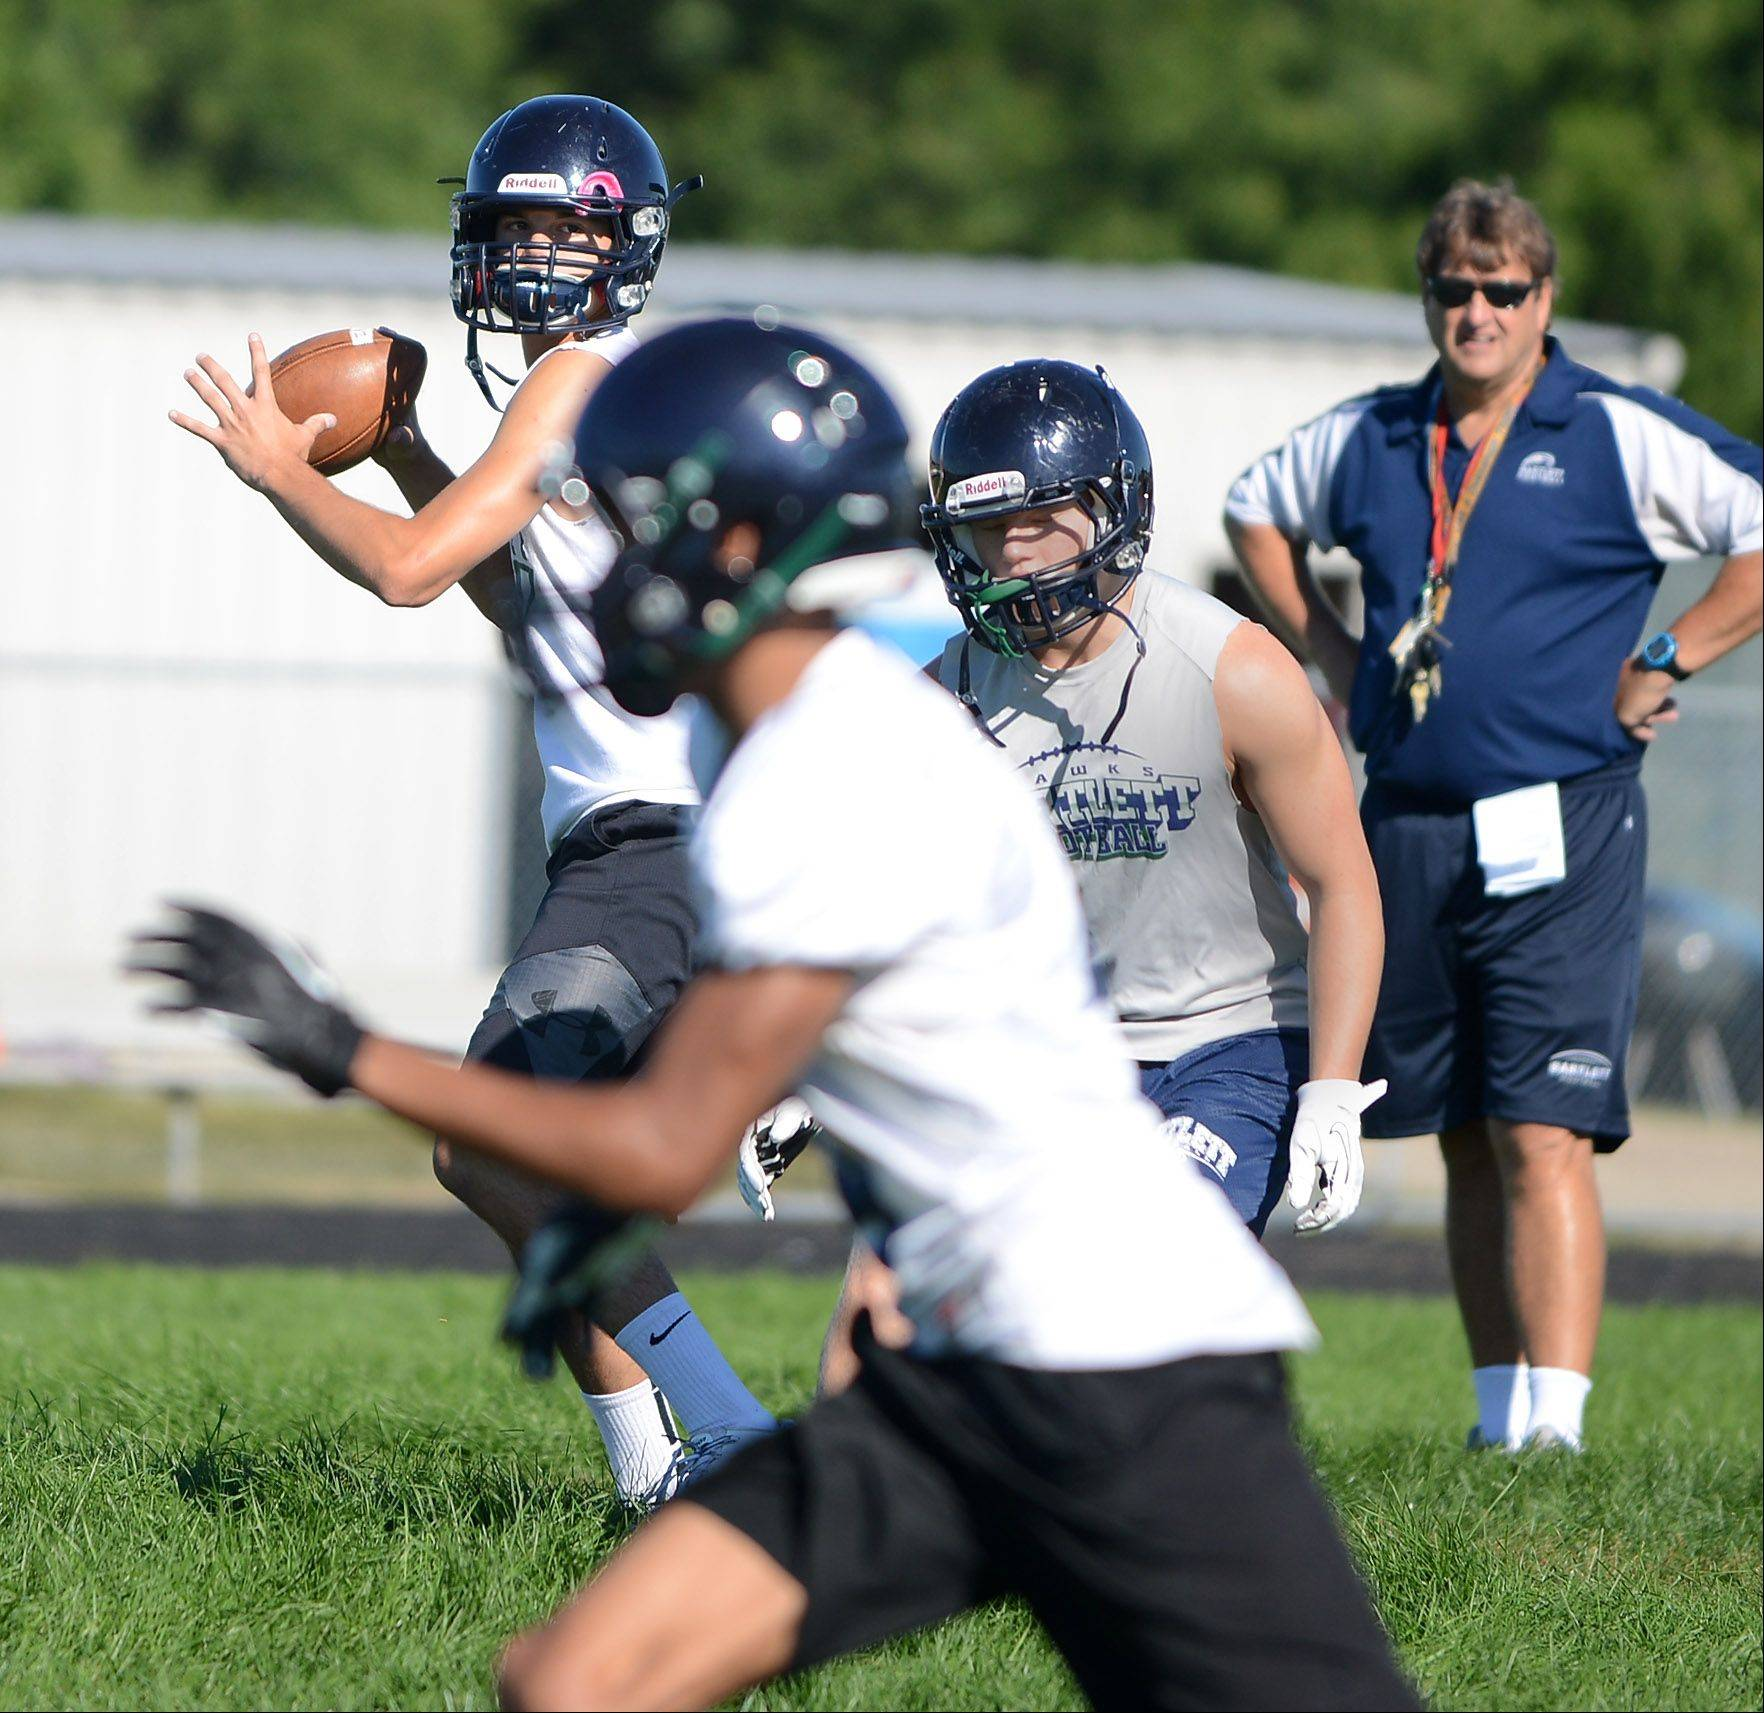 Quarterback Jordan Flint delivers a pass at Bartlett.